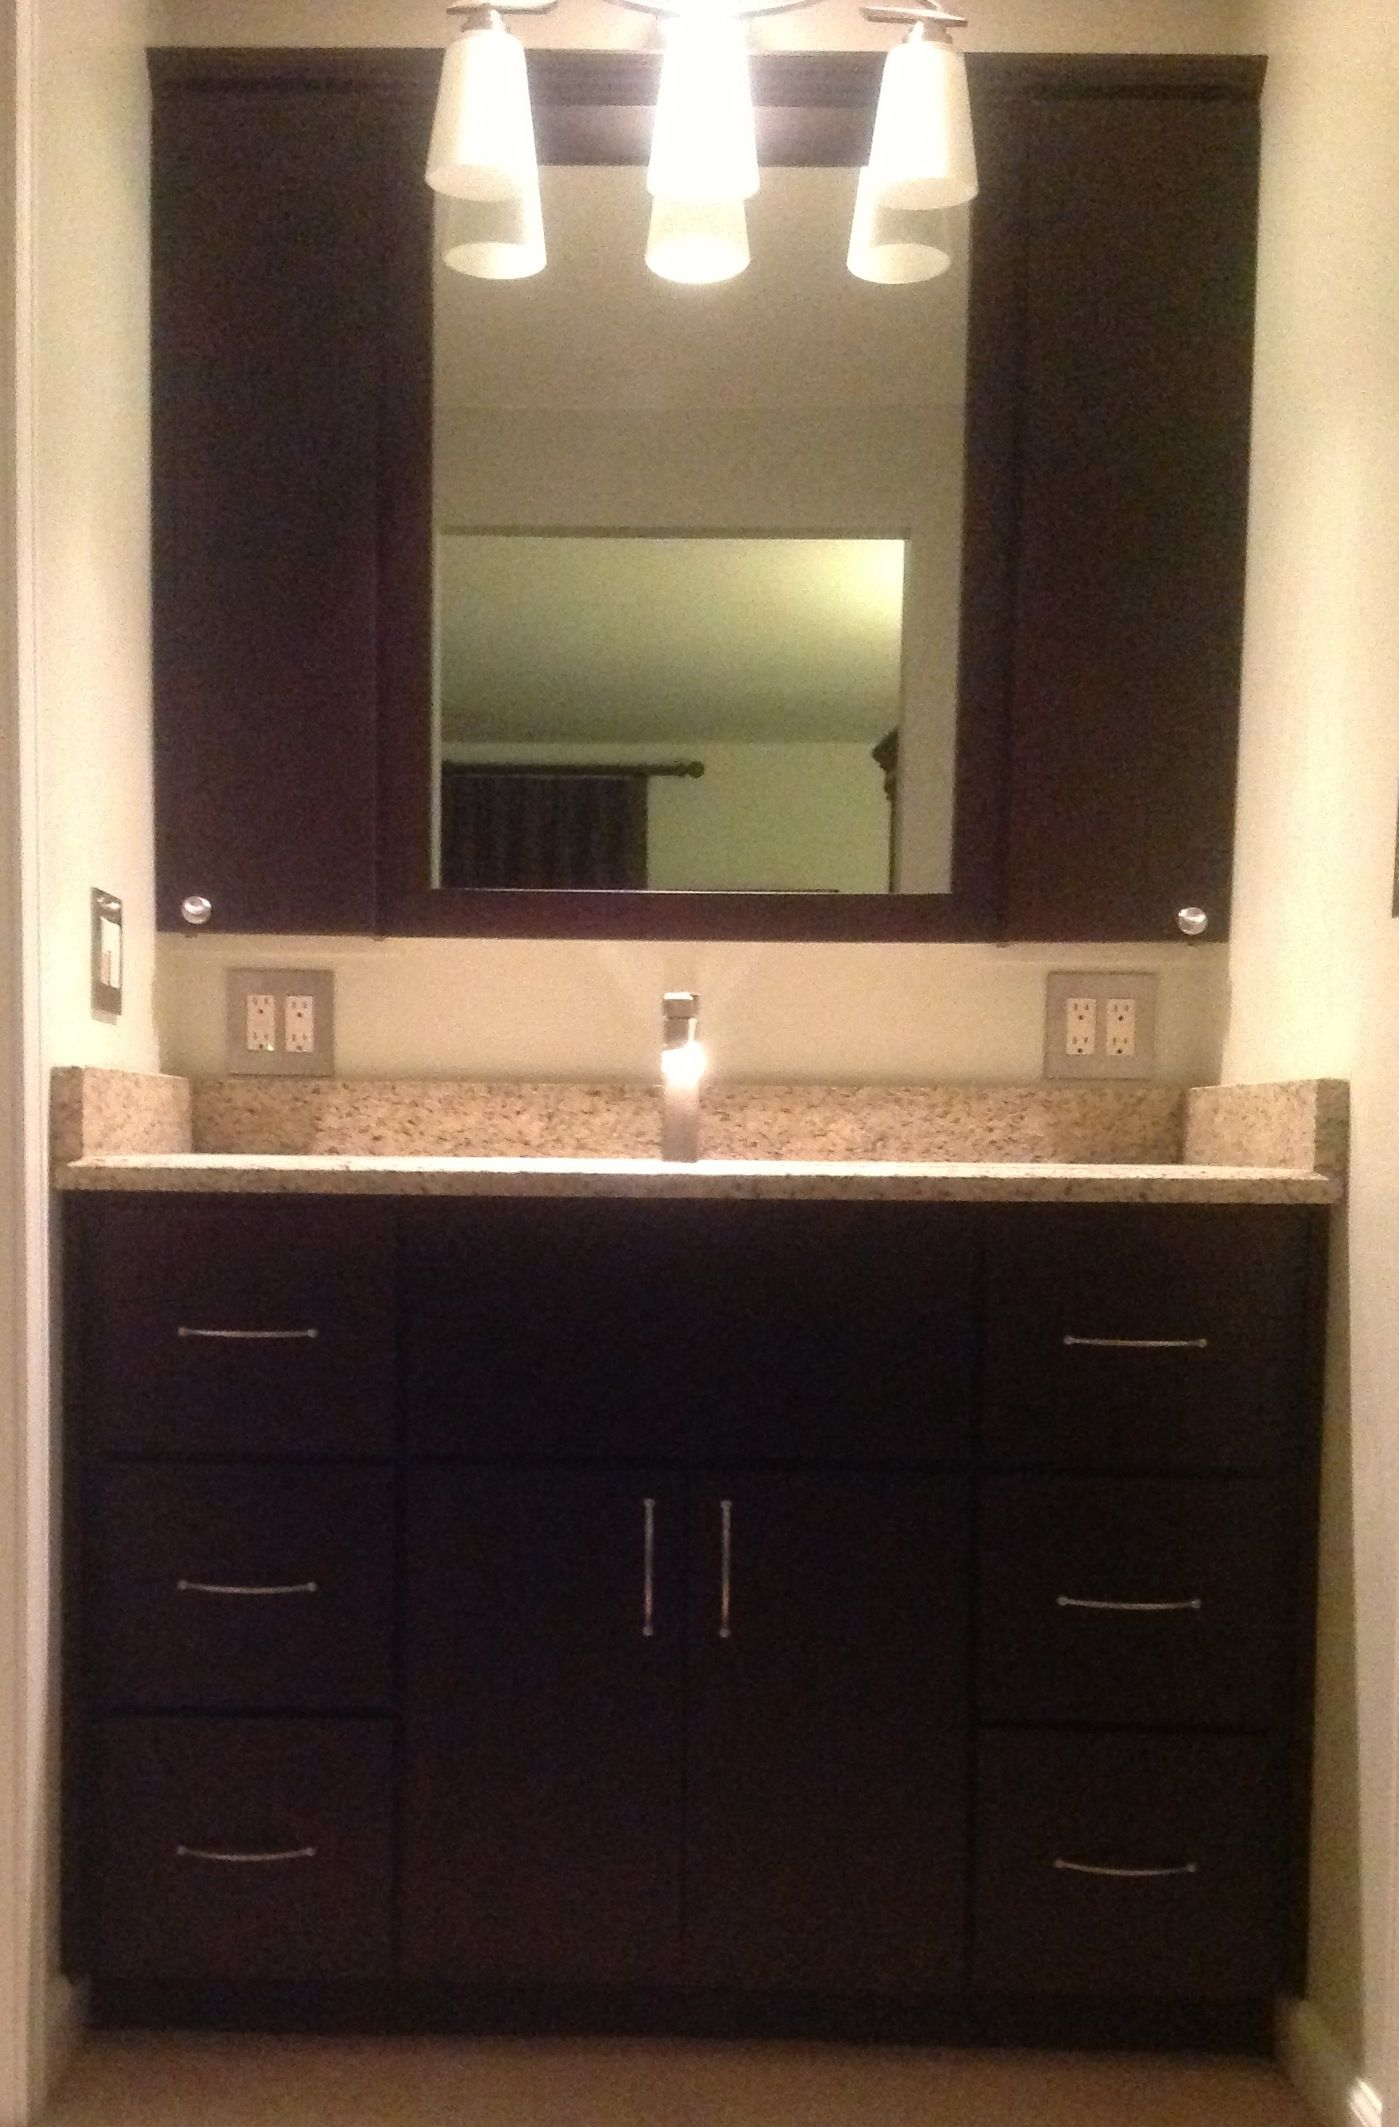 Innovative New Bathroom Vanities Are Up To 36 High Which Is What We Needed As  Get Your Home Ready For A Quick Sale With These Tips From Realestate Experts! &194 Photo Via Pinterest When You Want To Put A House On The Market, The  1970s